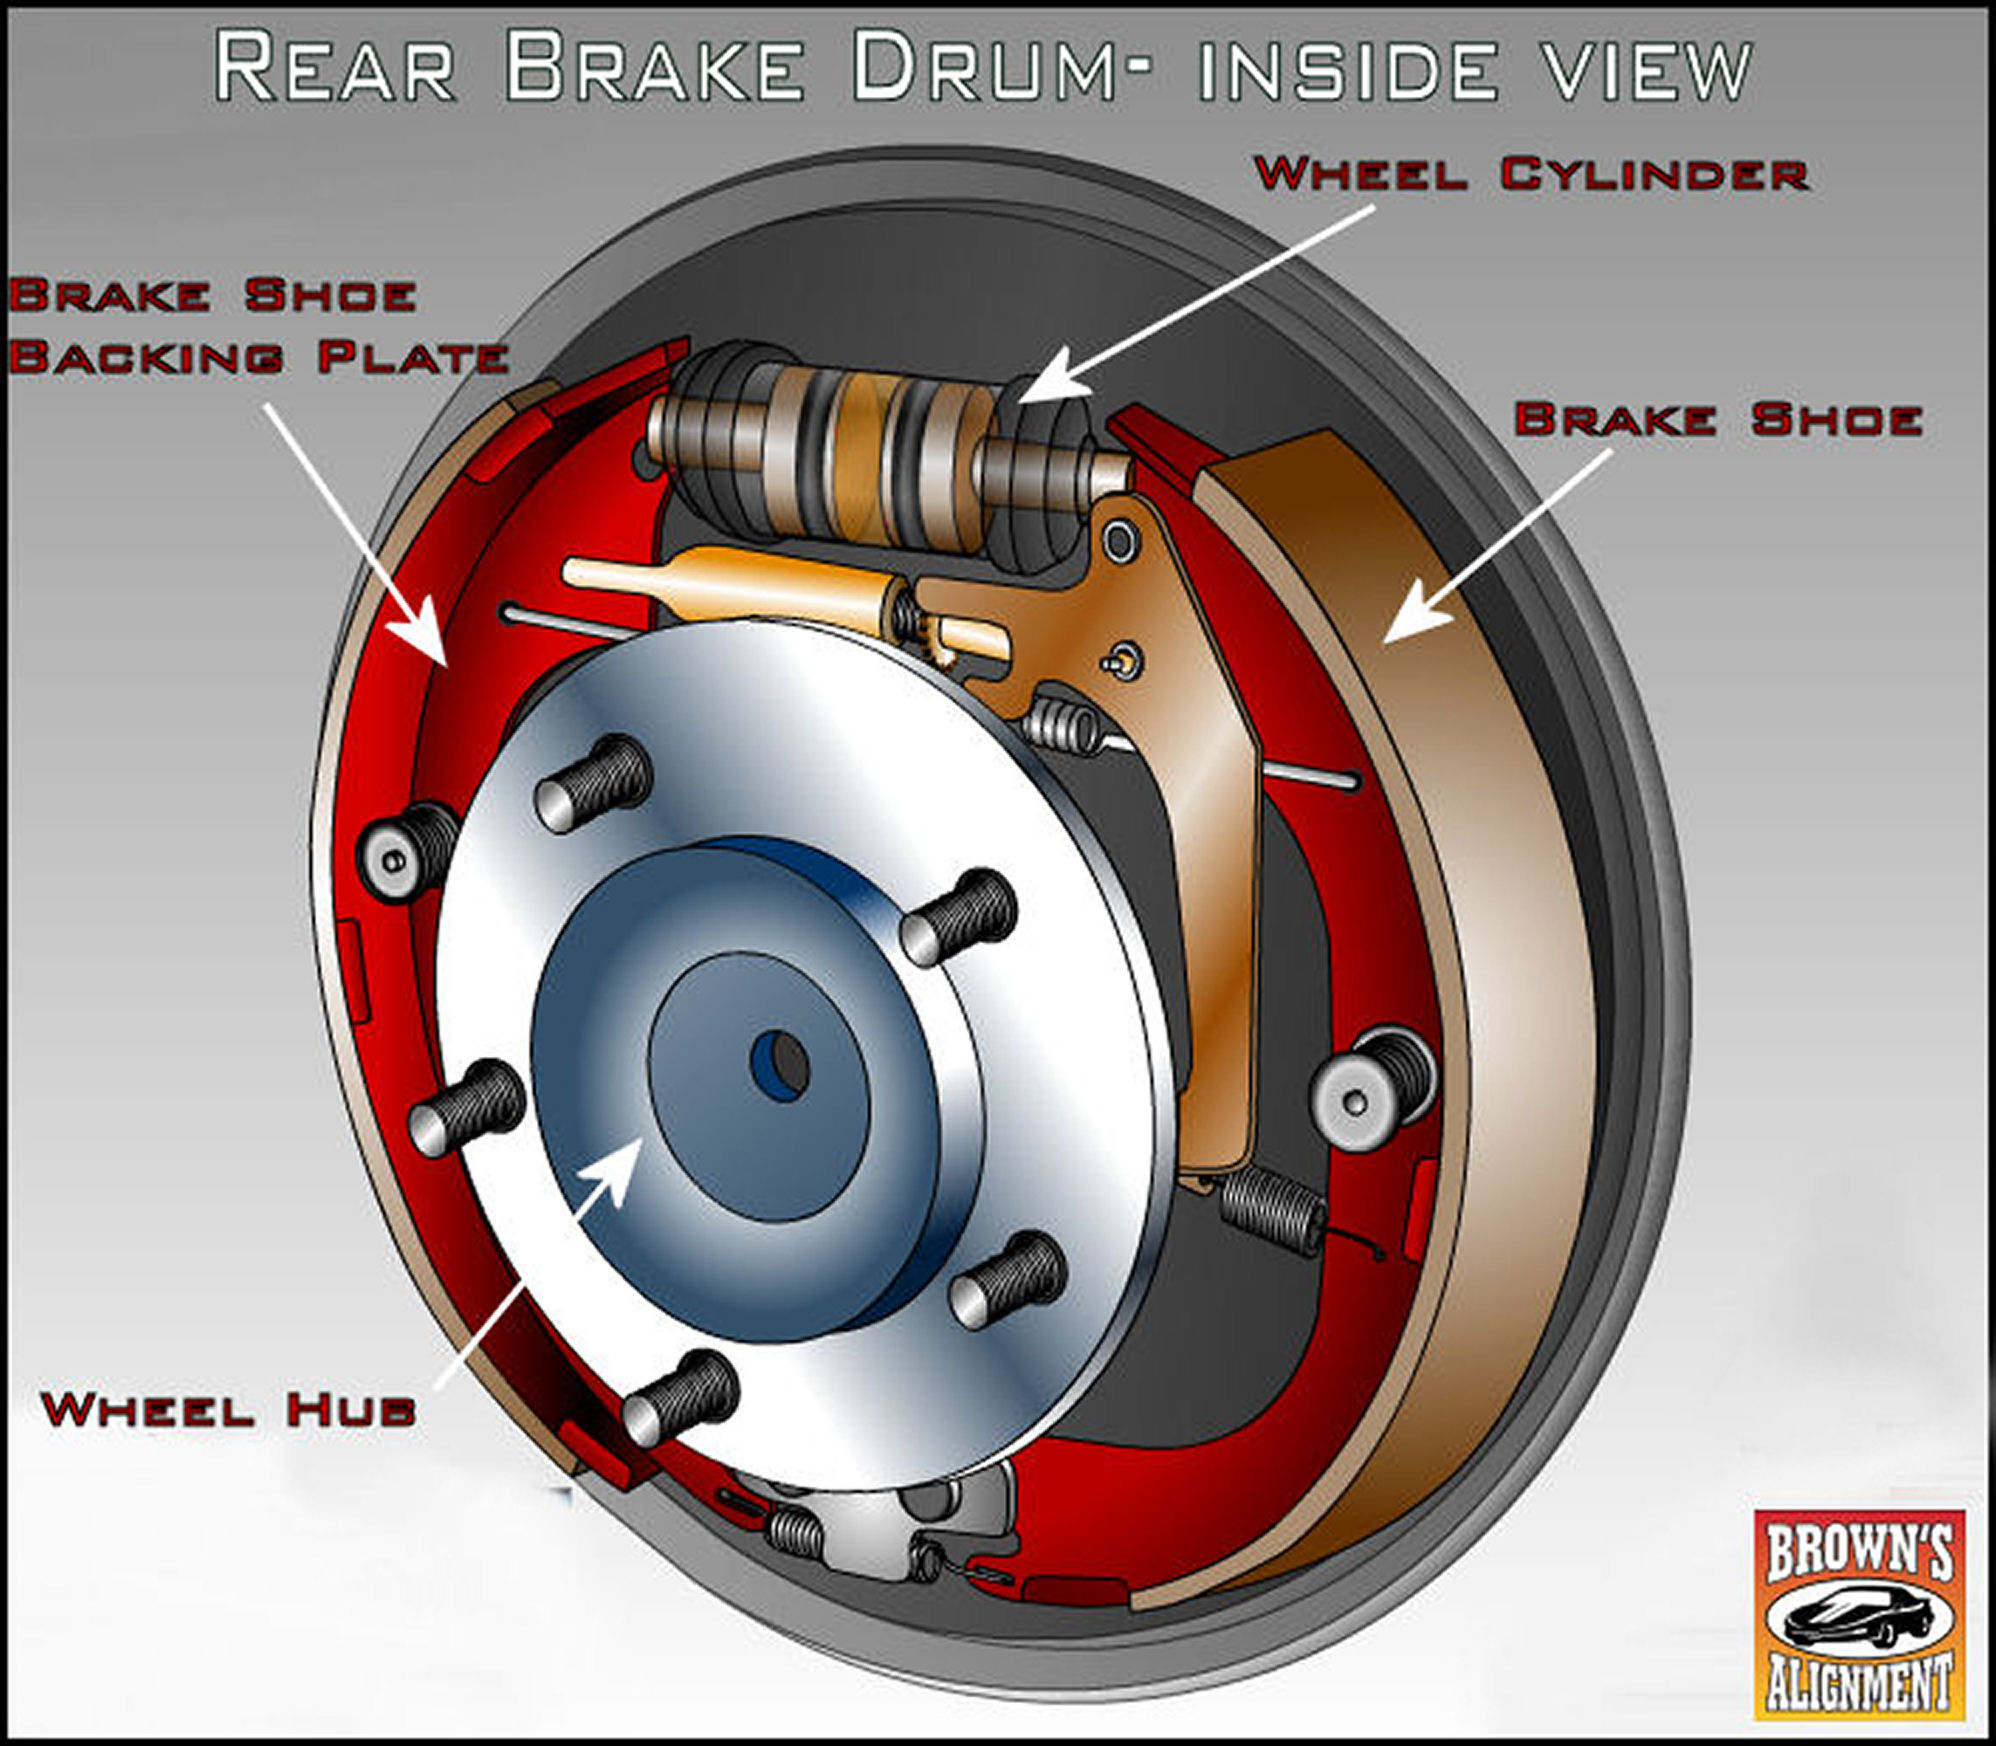 Car Brake Repair Service: Complete Brake Repair Services Brown's Alignment Auto Repair